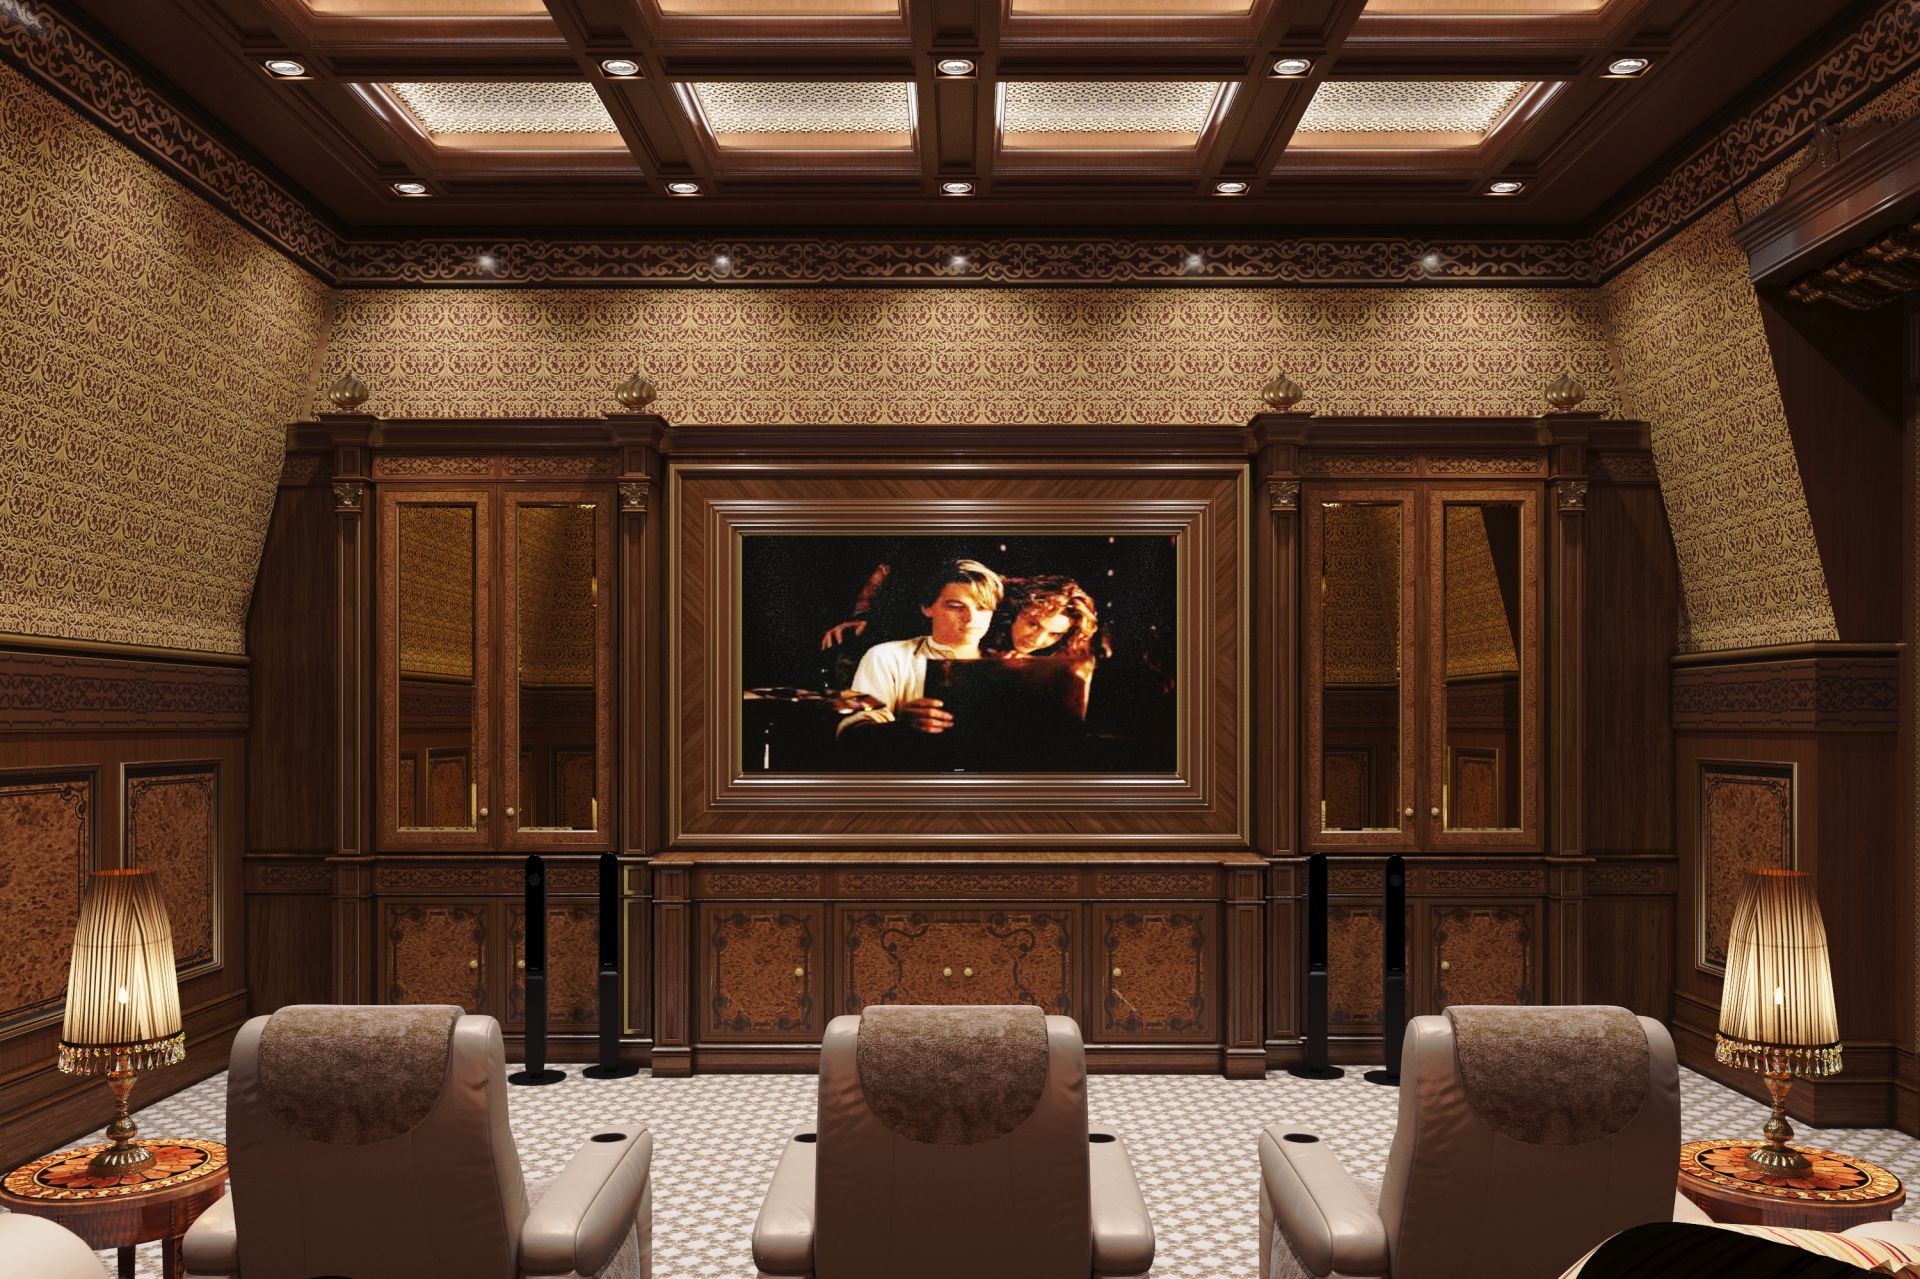 Cinema in the residence